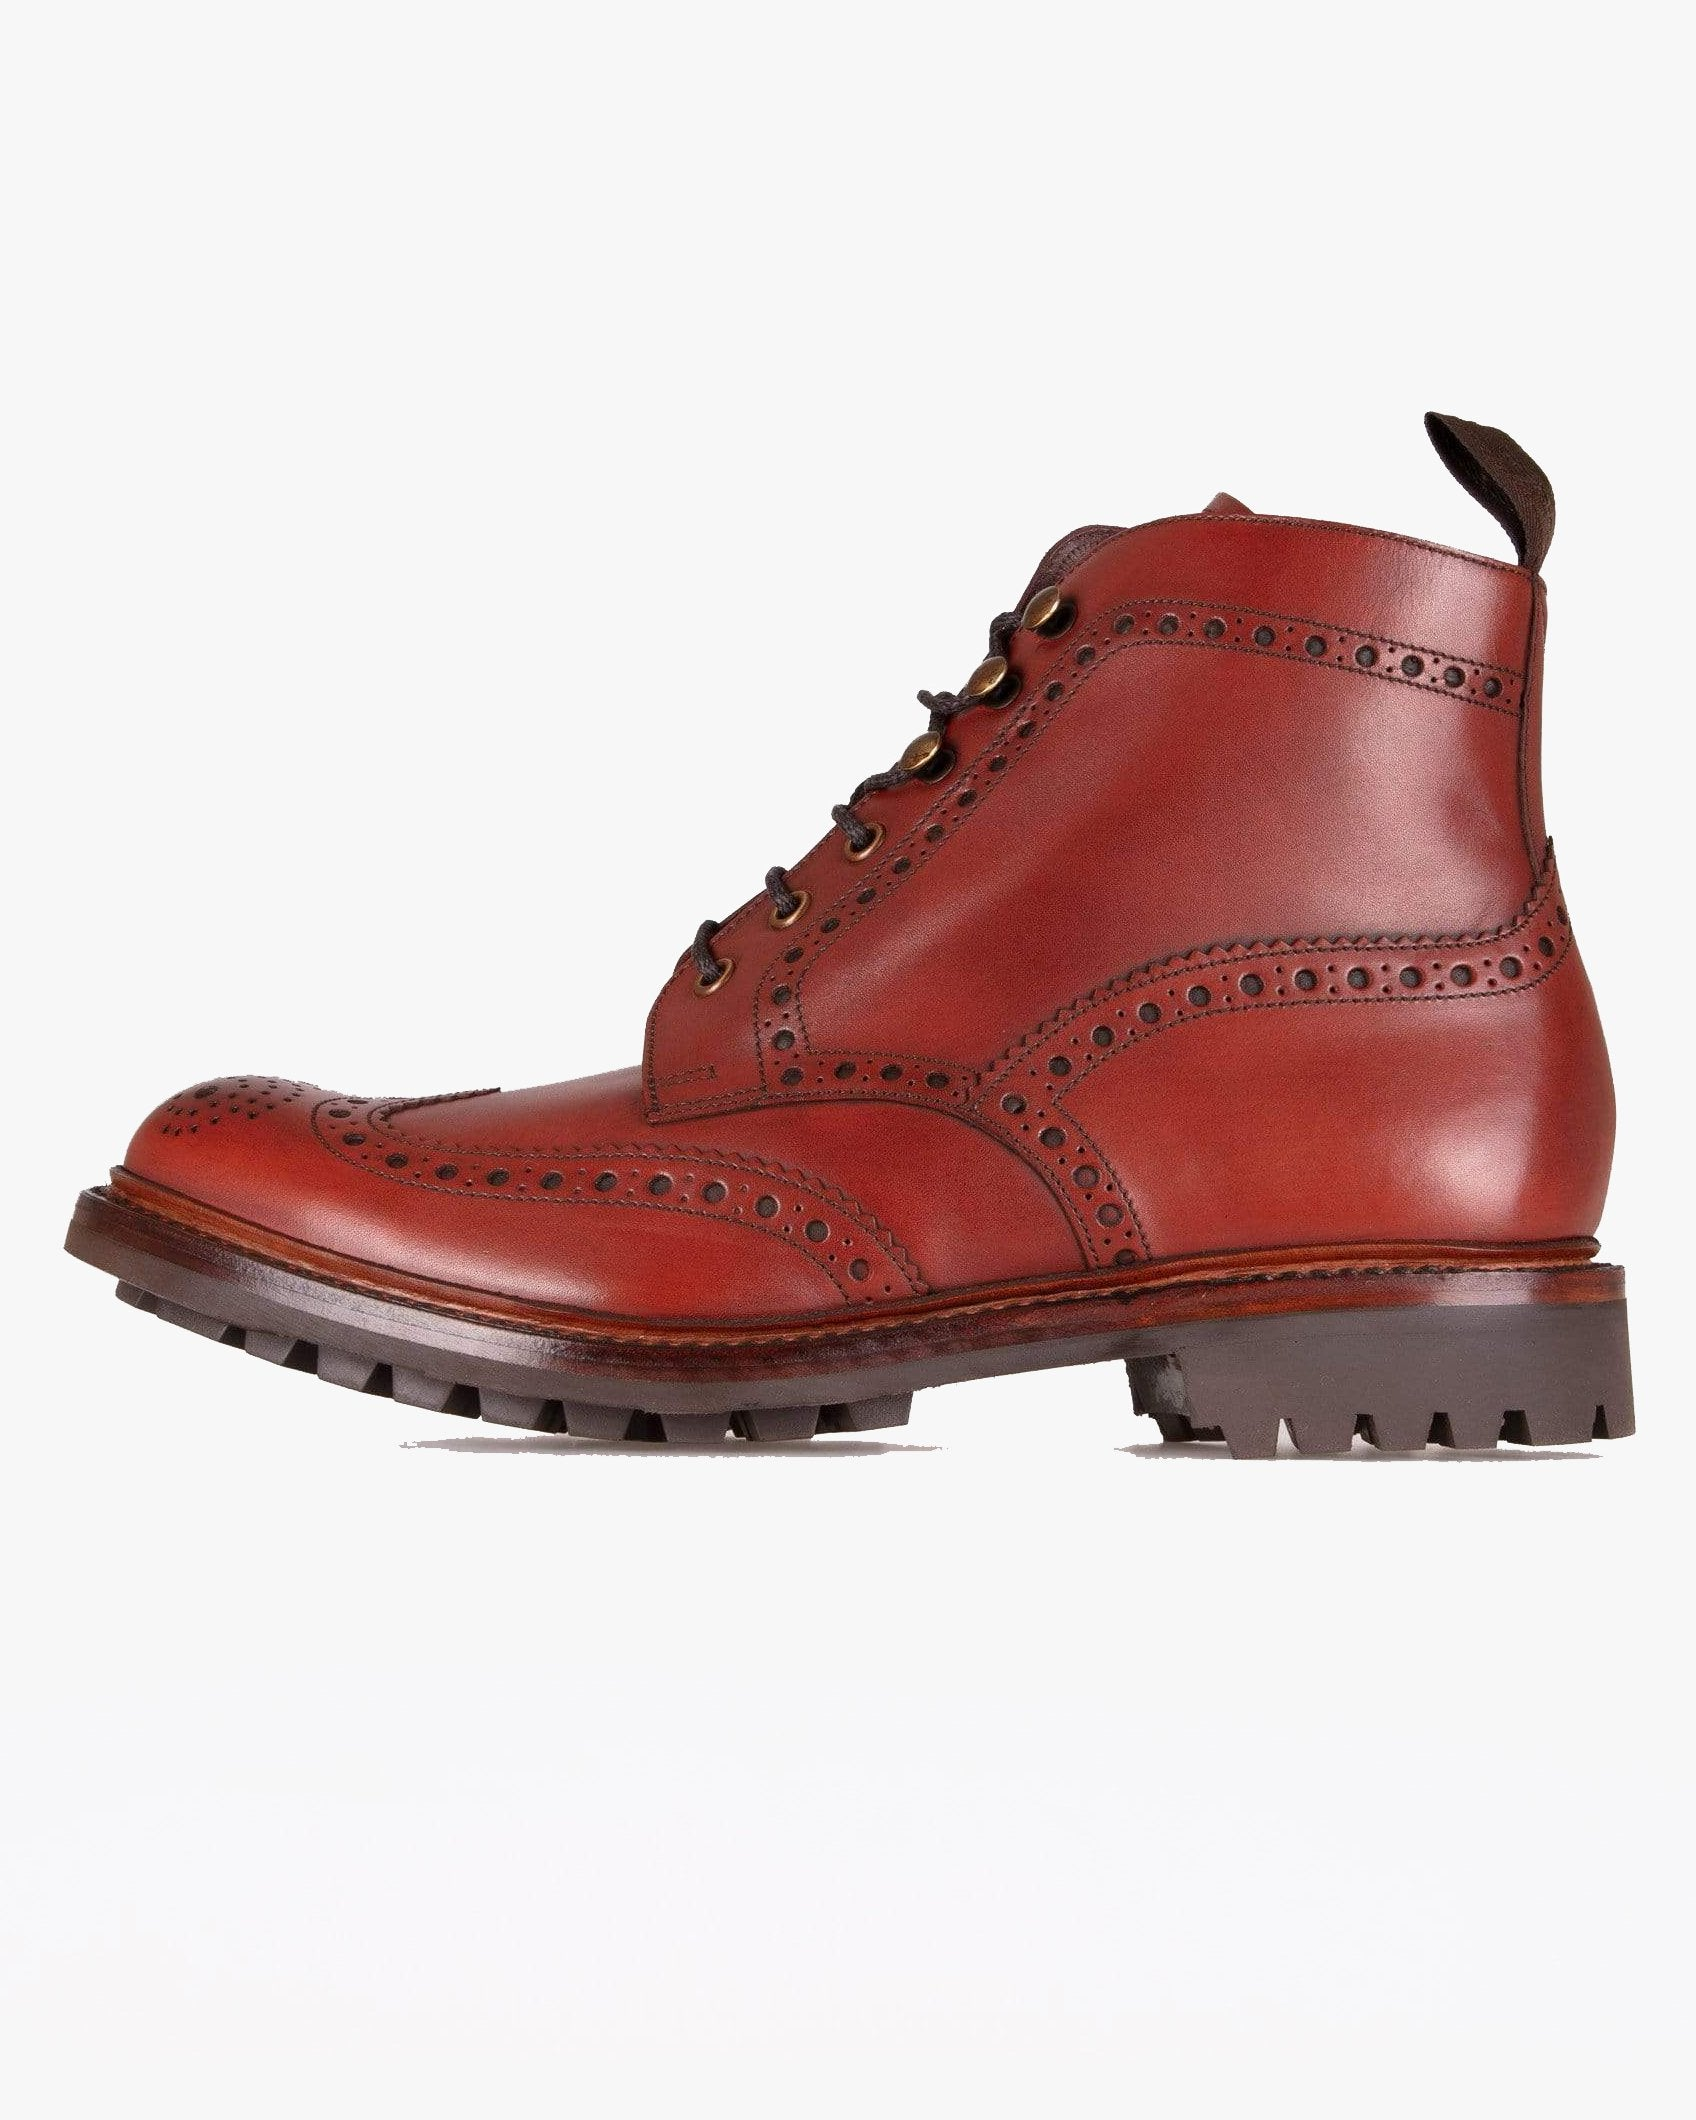 Loake Glendale Burnished Brogue Boot - Conker UK 7 GLEC7 5050362263211 Loake Shoemakers Boots